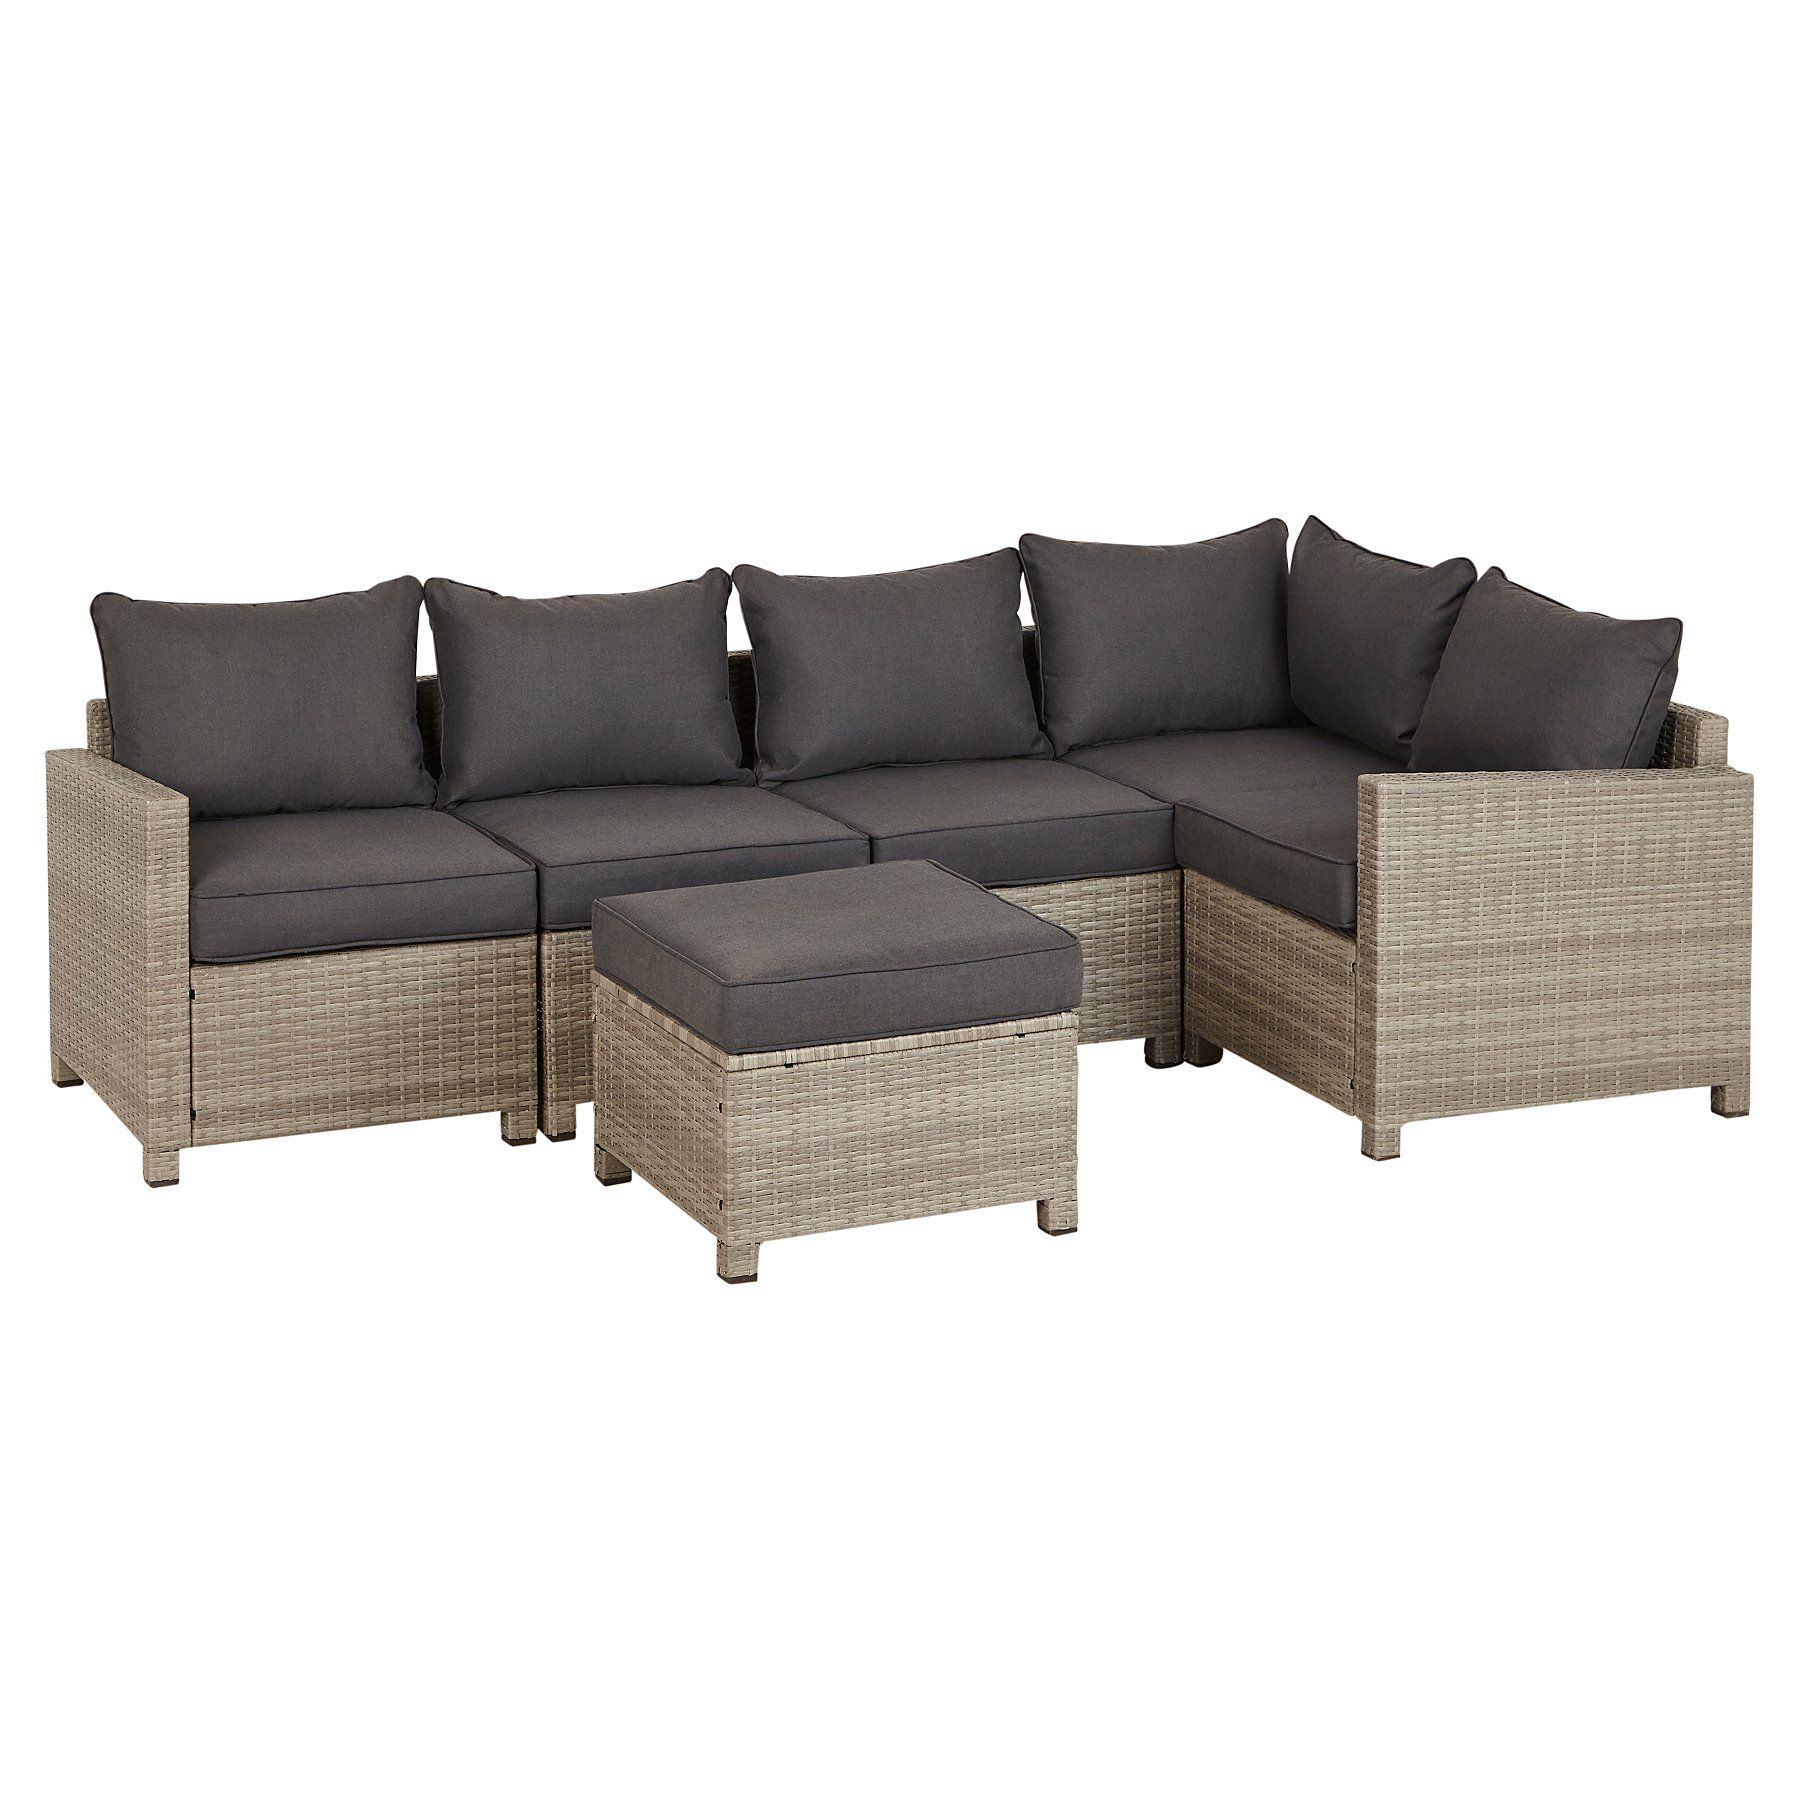 Magnificent Jakarta Corner Group Sofa Charcoal Garden Sofa Garden Gmtry Best Dining Table And Chair Ideas Images Gmtryco